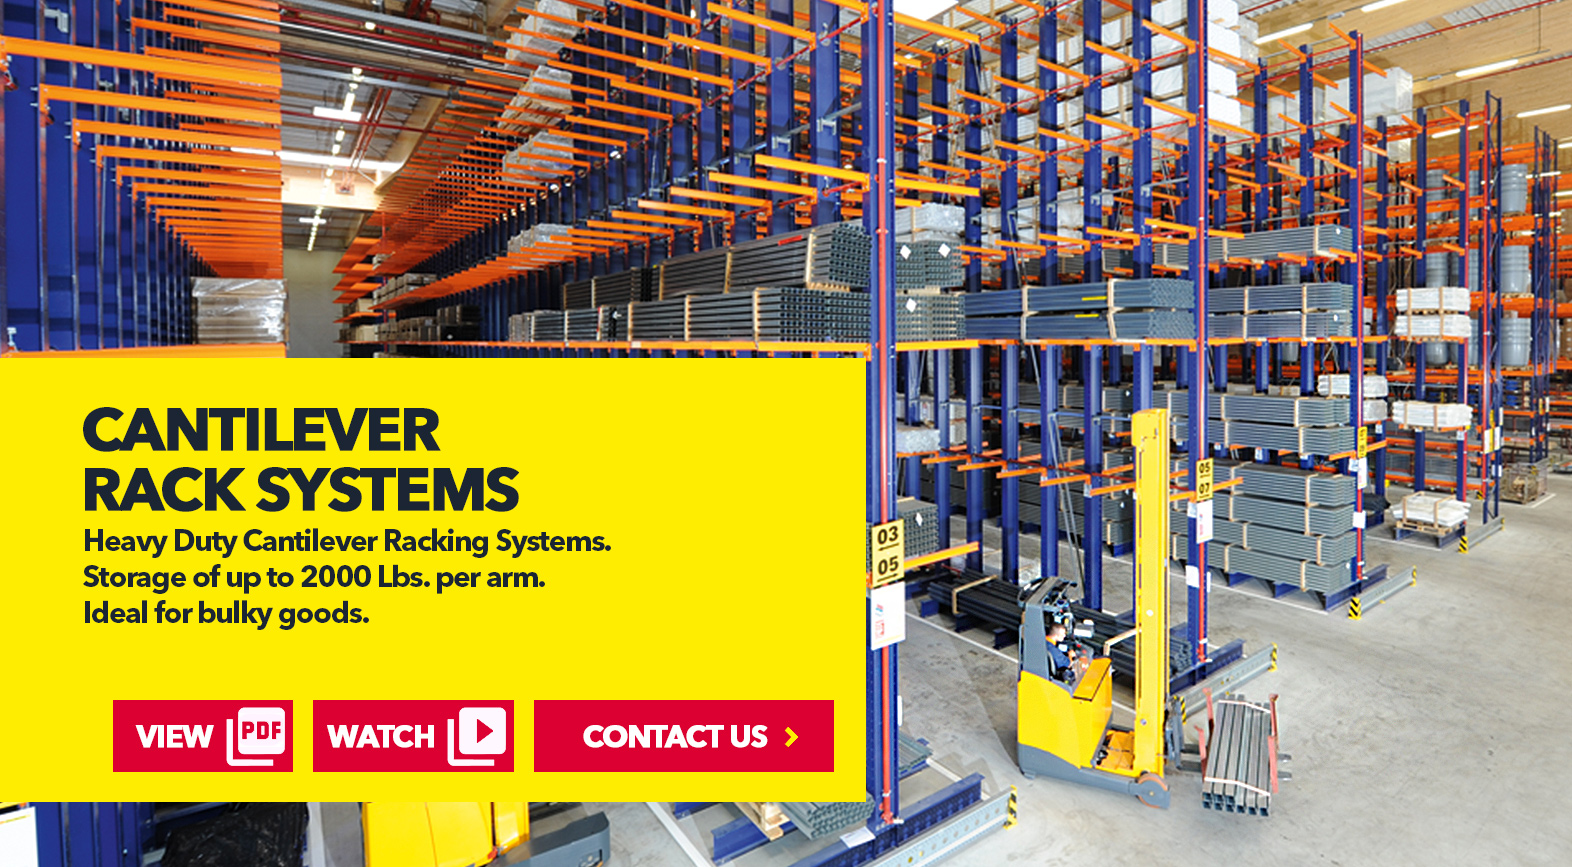 Cantilever Rack Systems by SSI Schaefer USA Download Guide, Watch Video, Contact Us. www.chaefershelving.com